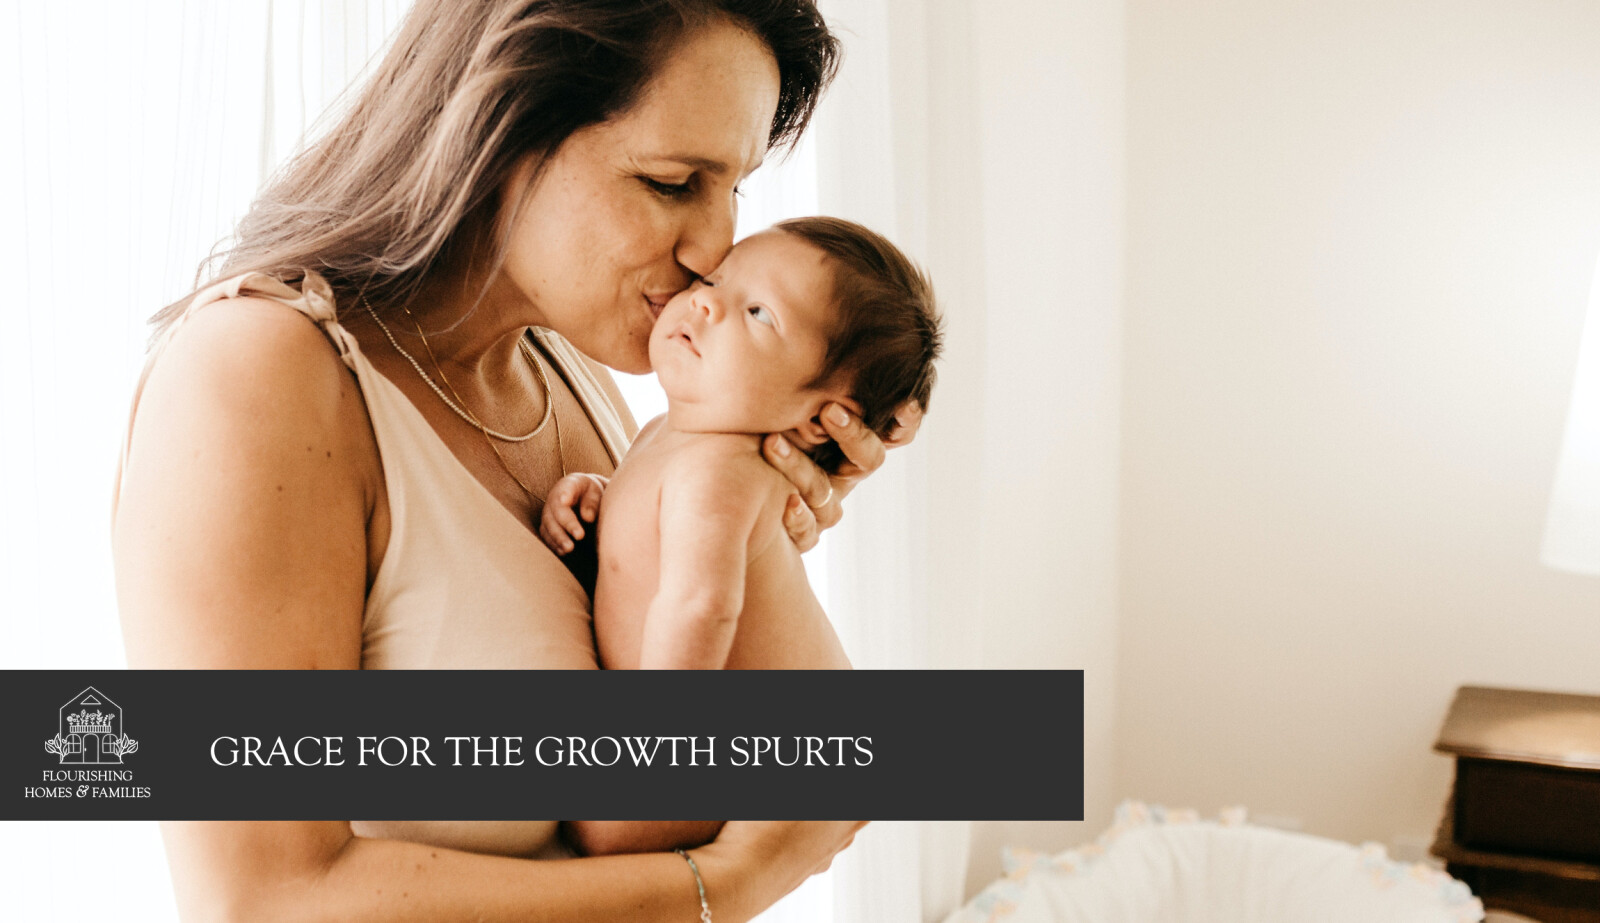 GRACE FOR THE GROWTH SPURTS